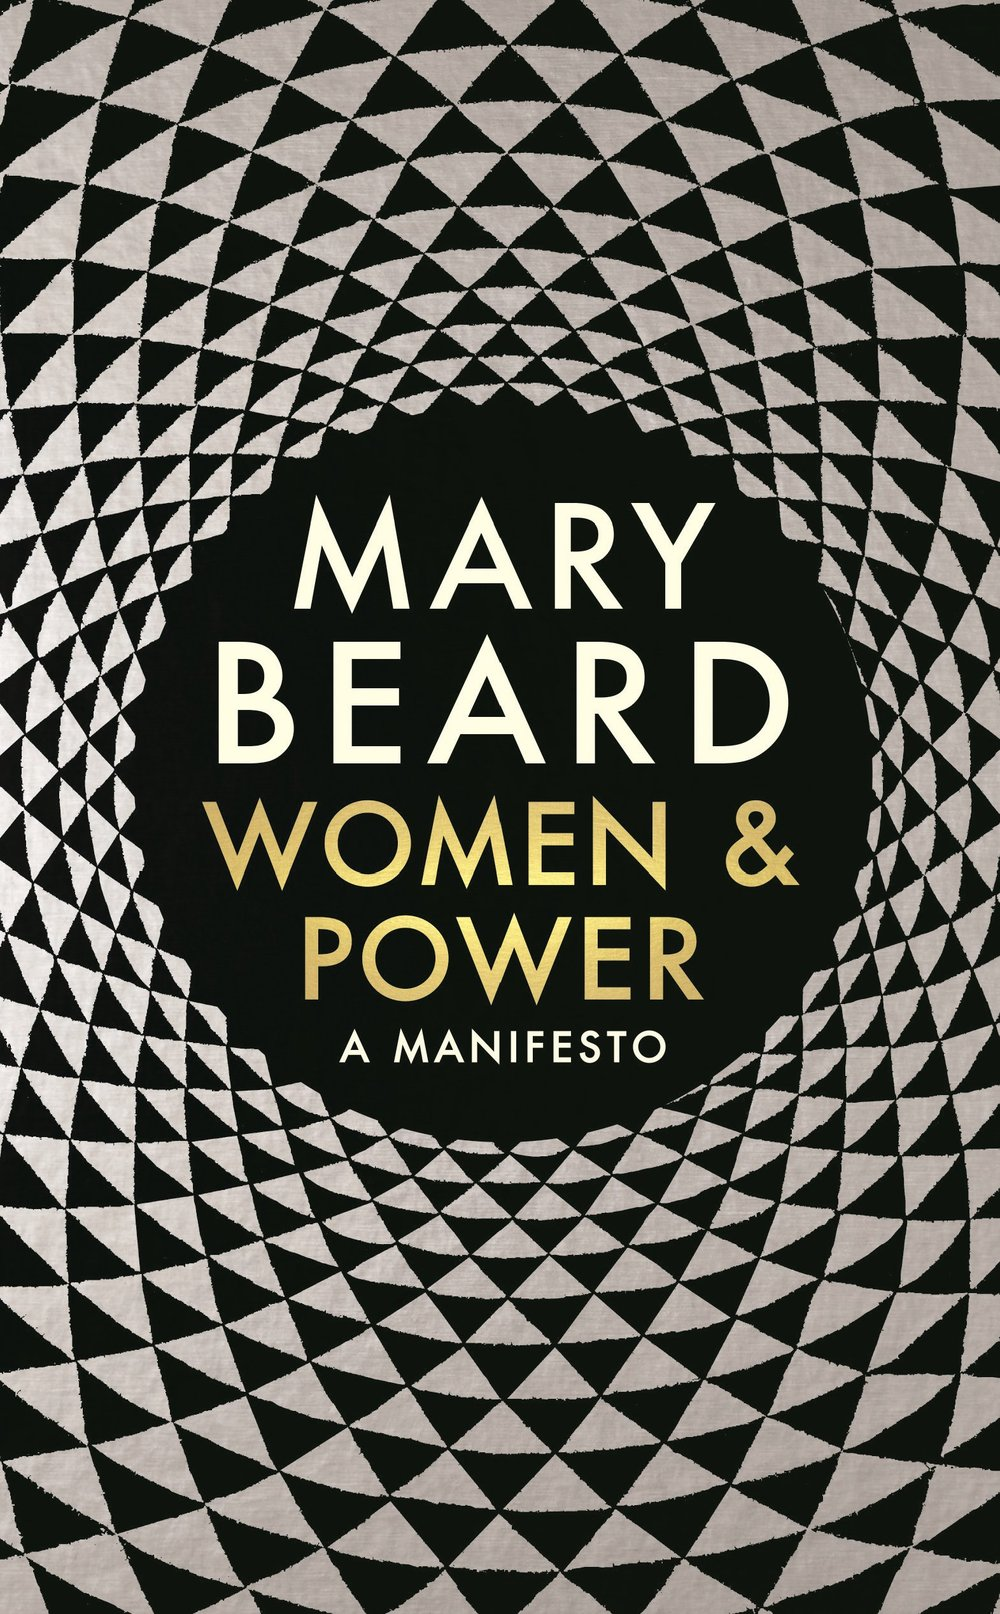 Women & Power, by Mary Beard